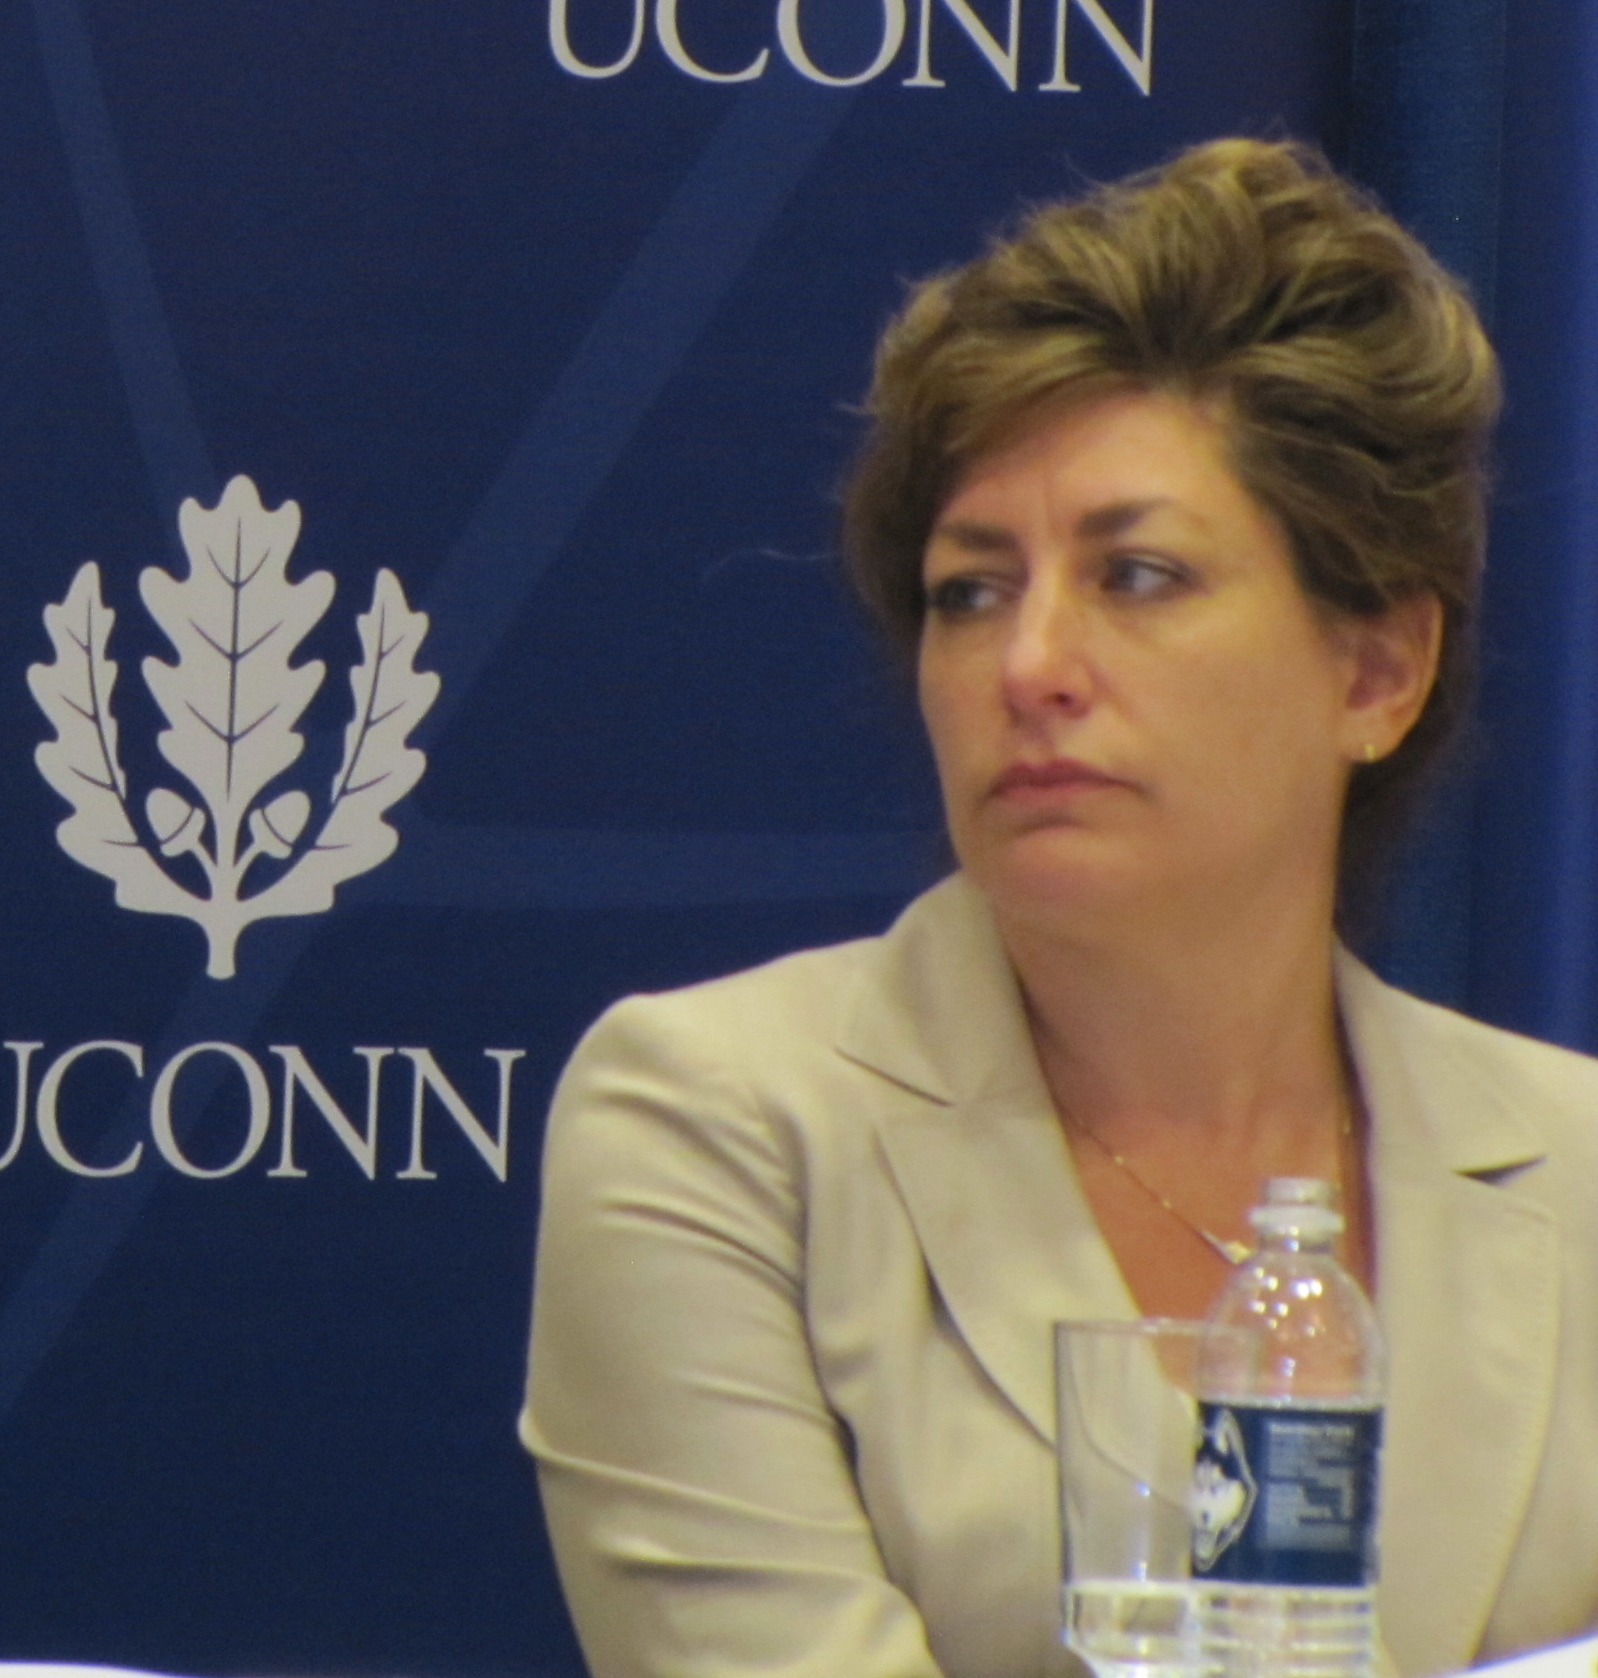 UConn president's compensation 12th among flagship schools